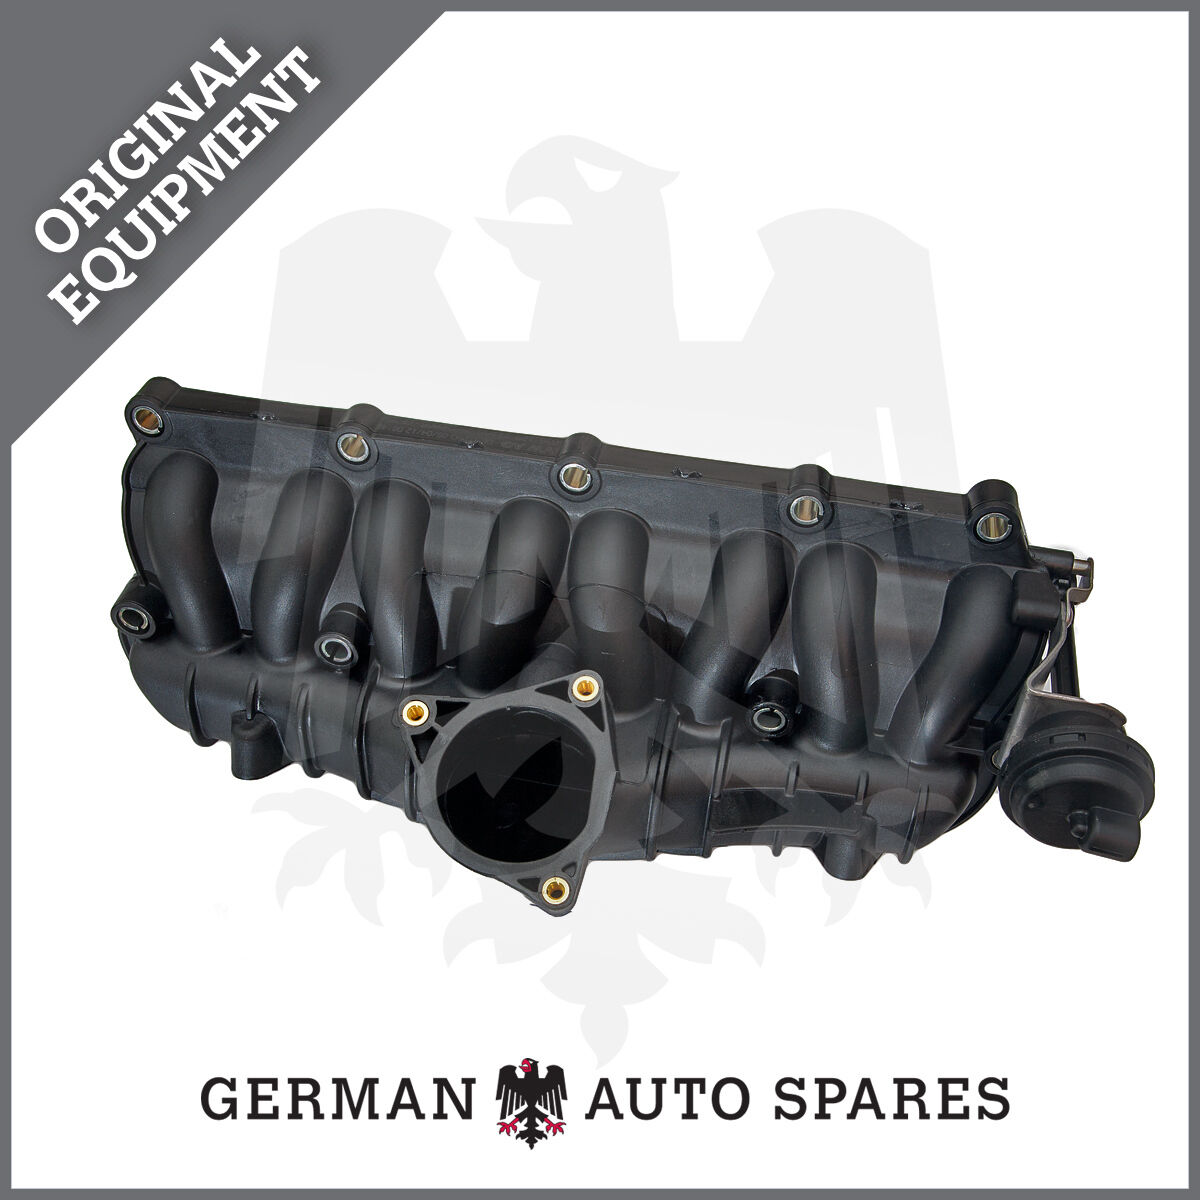 Inlet Manifold For 2 Litre Tdi Seat Altea Leon Toledo 03g129711as 03g 129 711as 163 434 00